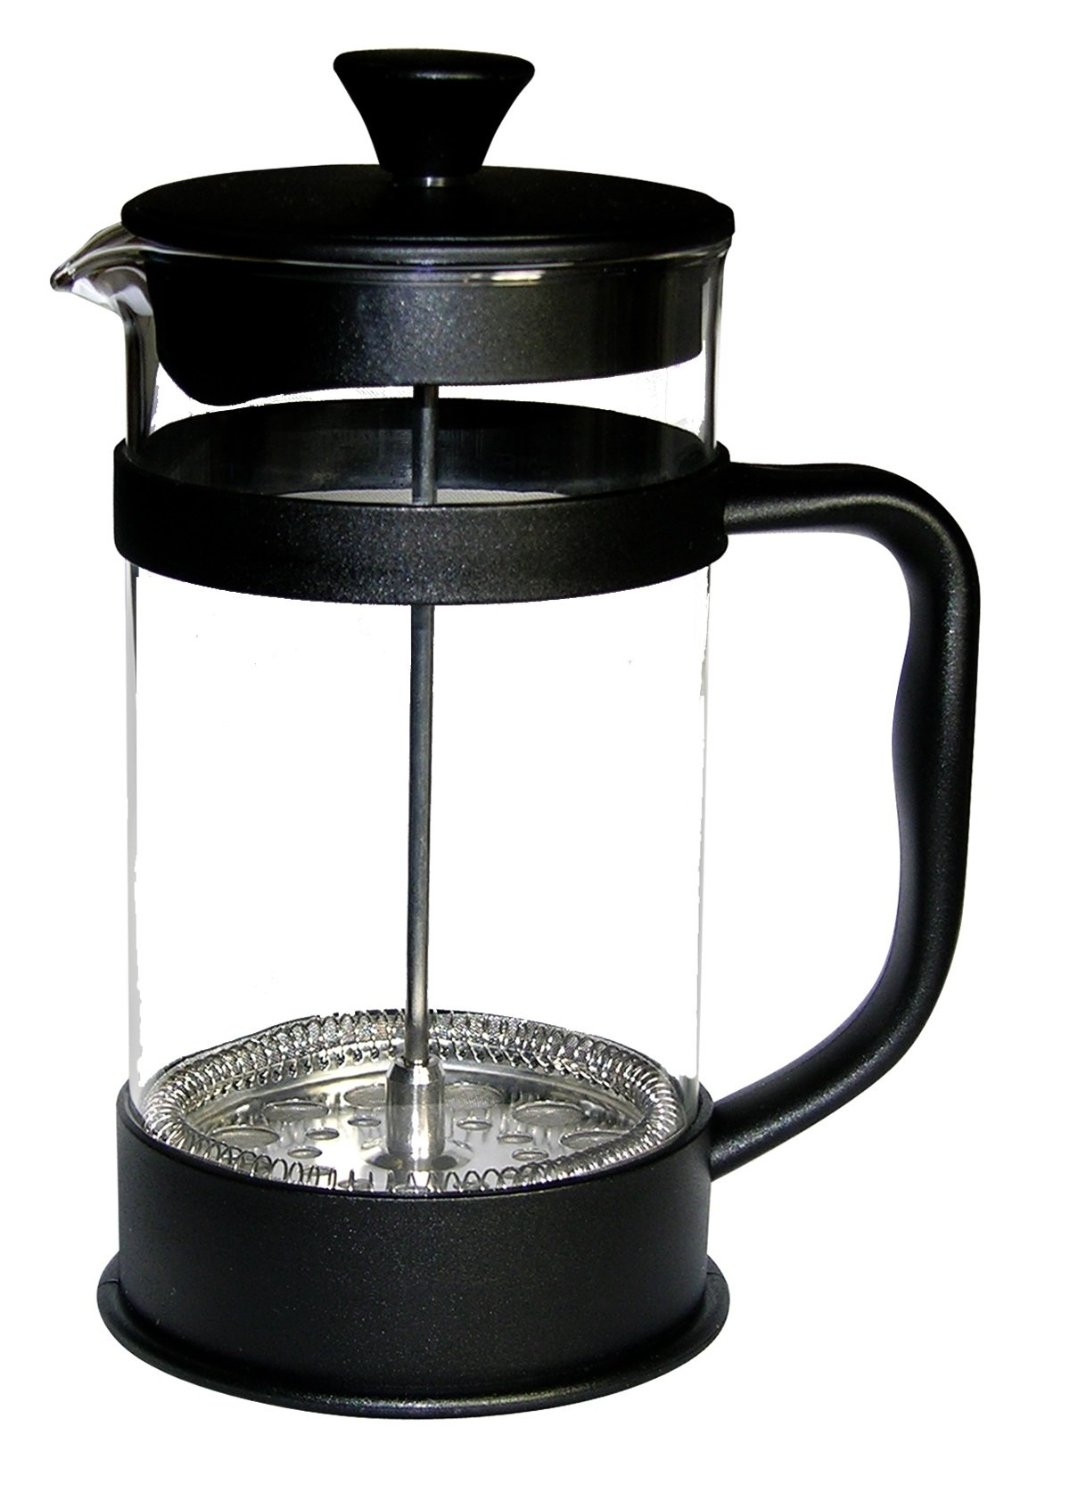 Best French Press Coffee Maker 2014 : Amazon: French Press Coffee Maker for USD 6.95 + Free Shipping with Prime (85% Off)